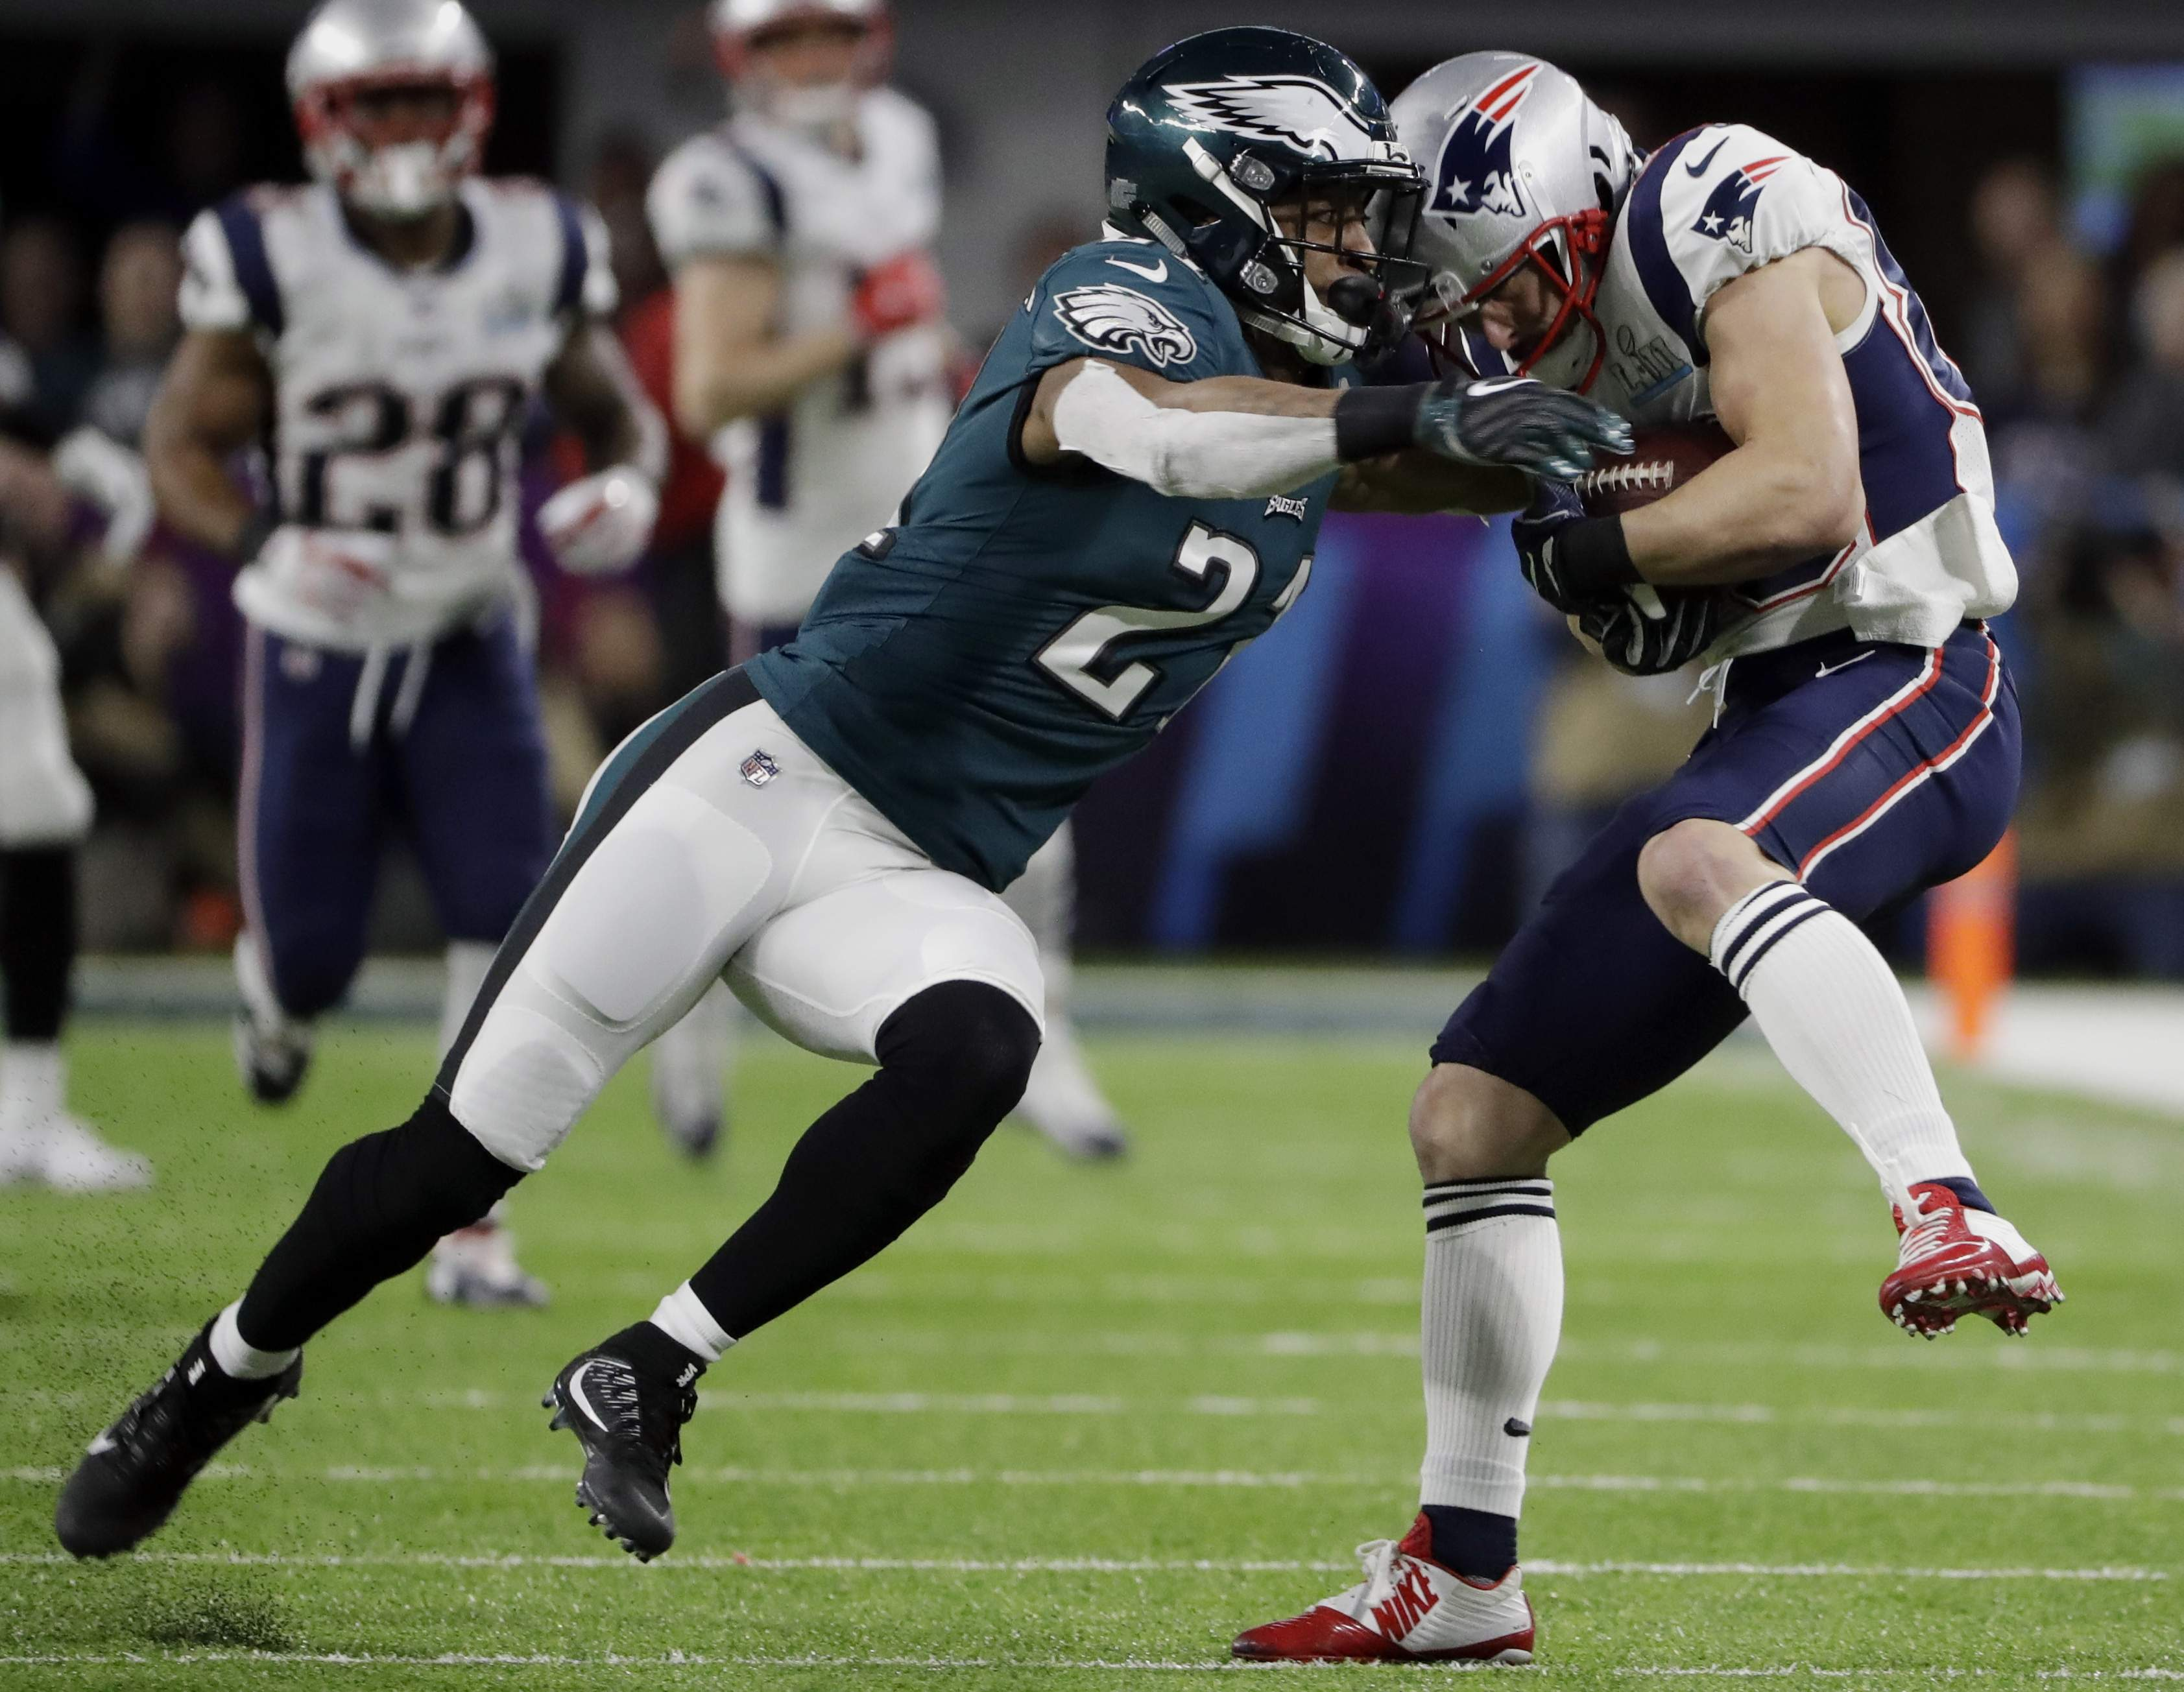 Philadelphia Eagles cornerback Patrick Robinson (21), tries to tackle New England Patriots wide receiver Danny Amendola (80), during the first half of the NFL Super Bowl 52 football game, Sunday, Feb. 4, 2018, in Minneapolis. (AP Photo/Chris O'Meara)